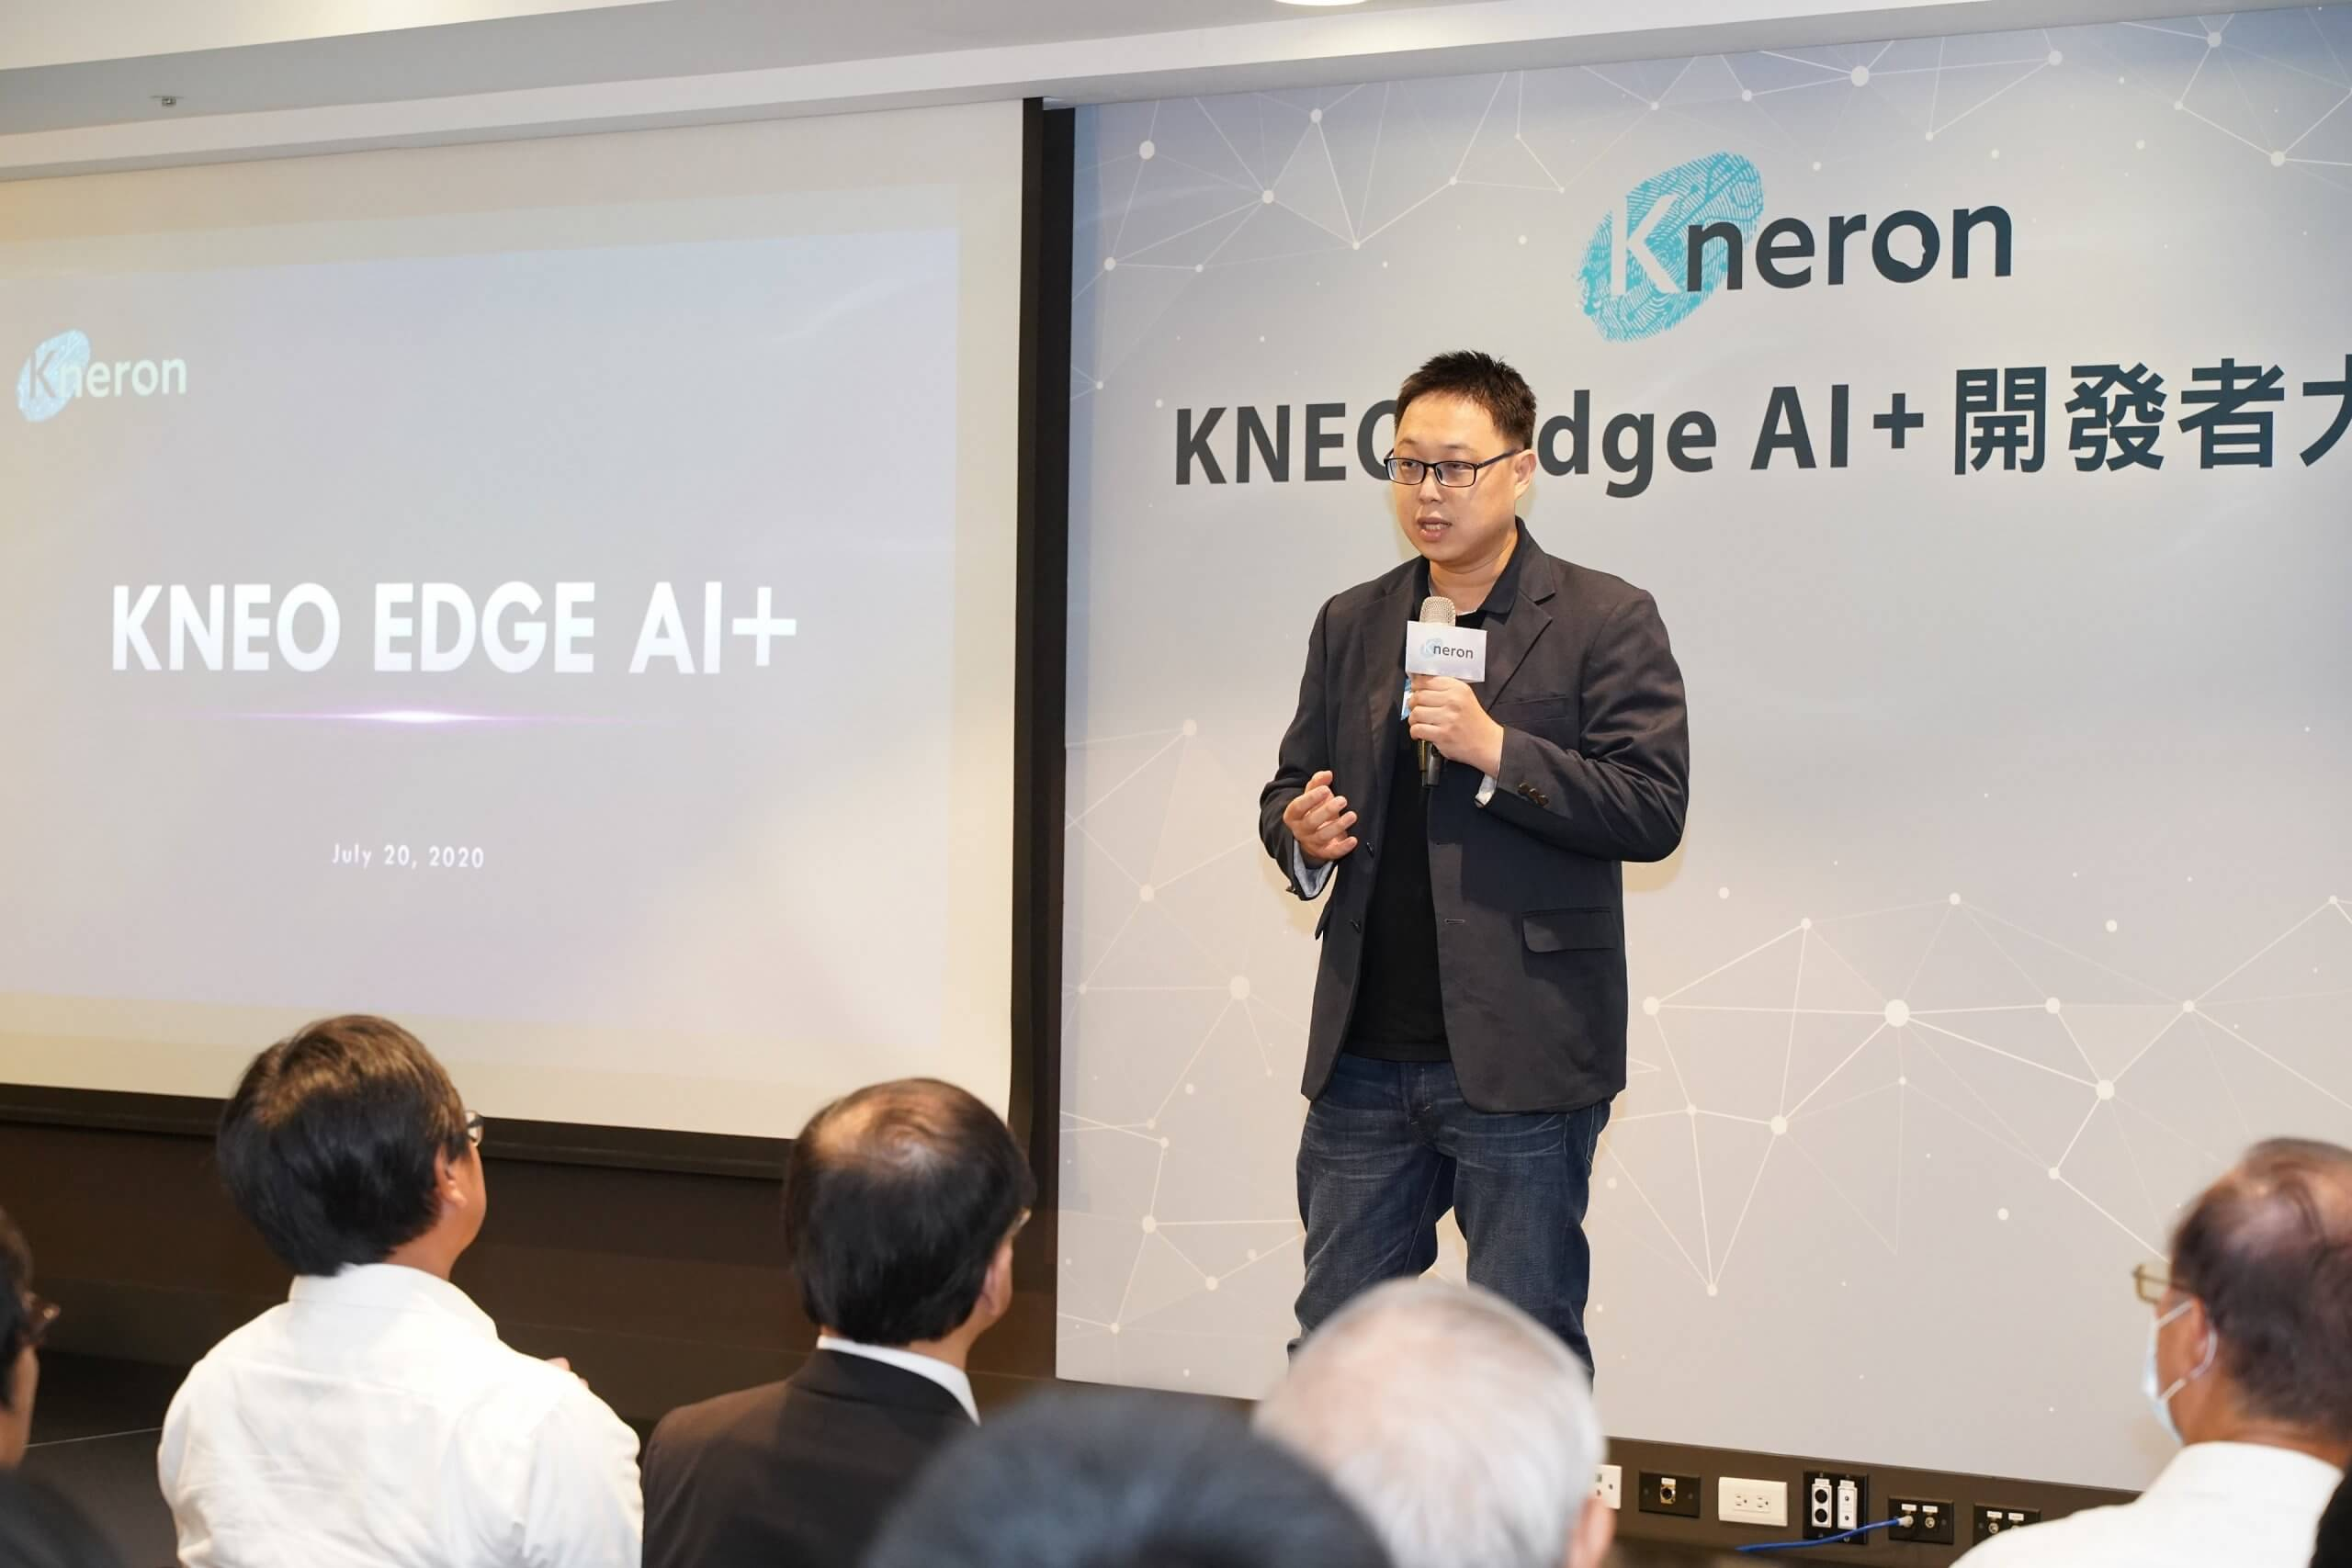 ITM and Kneron launched blockchain-enabled edge AI to make possible the realization of the convergence of Blockchain and AIoT